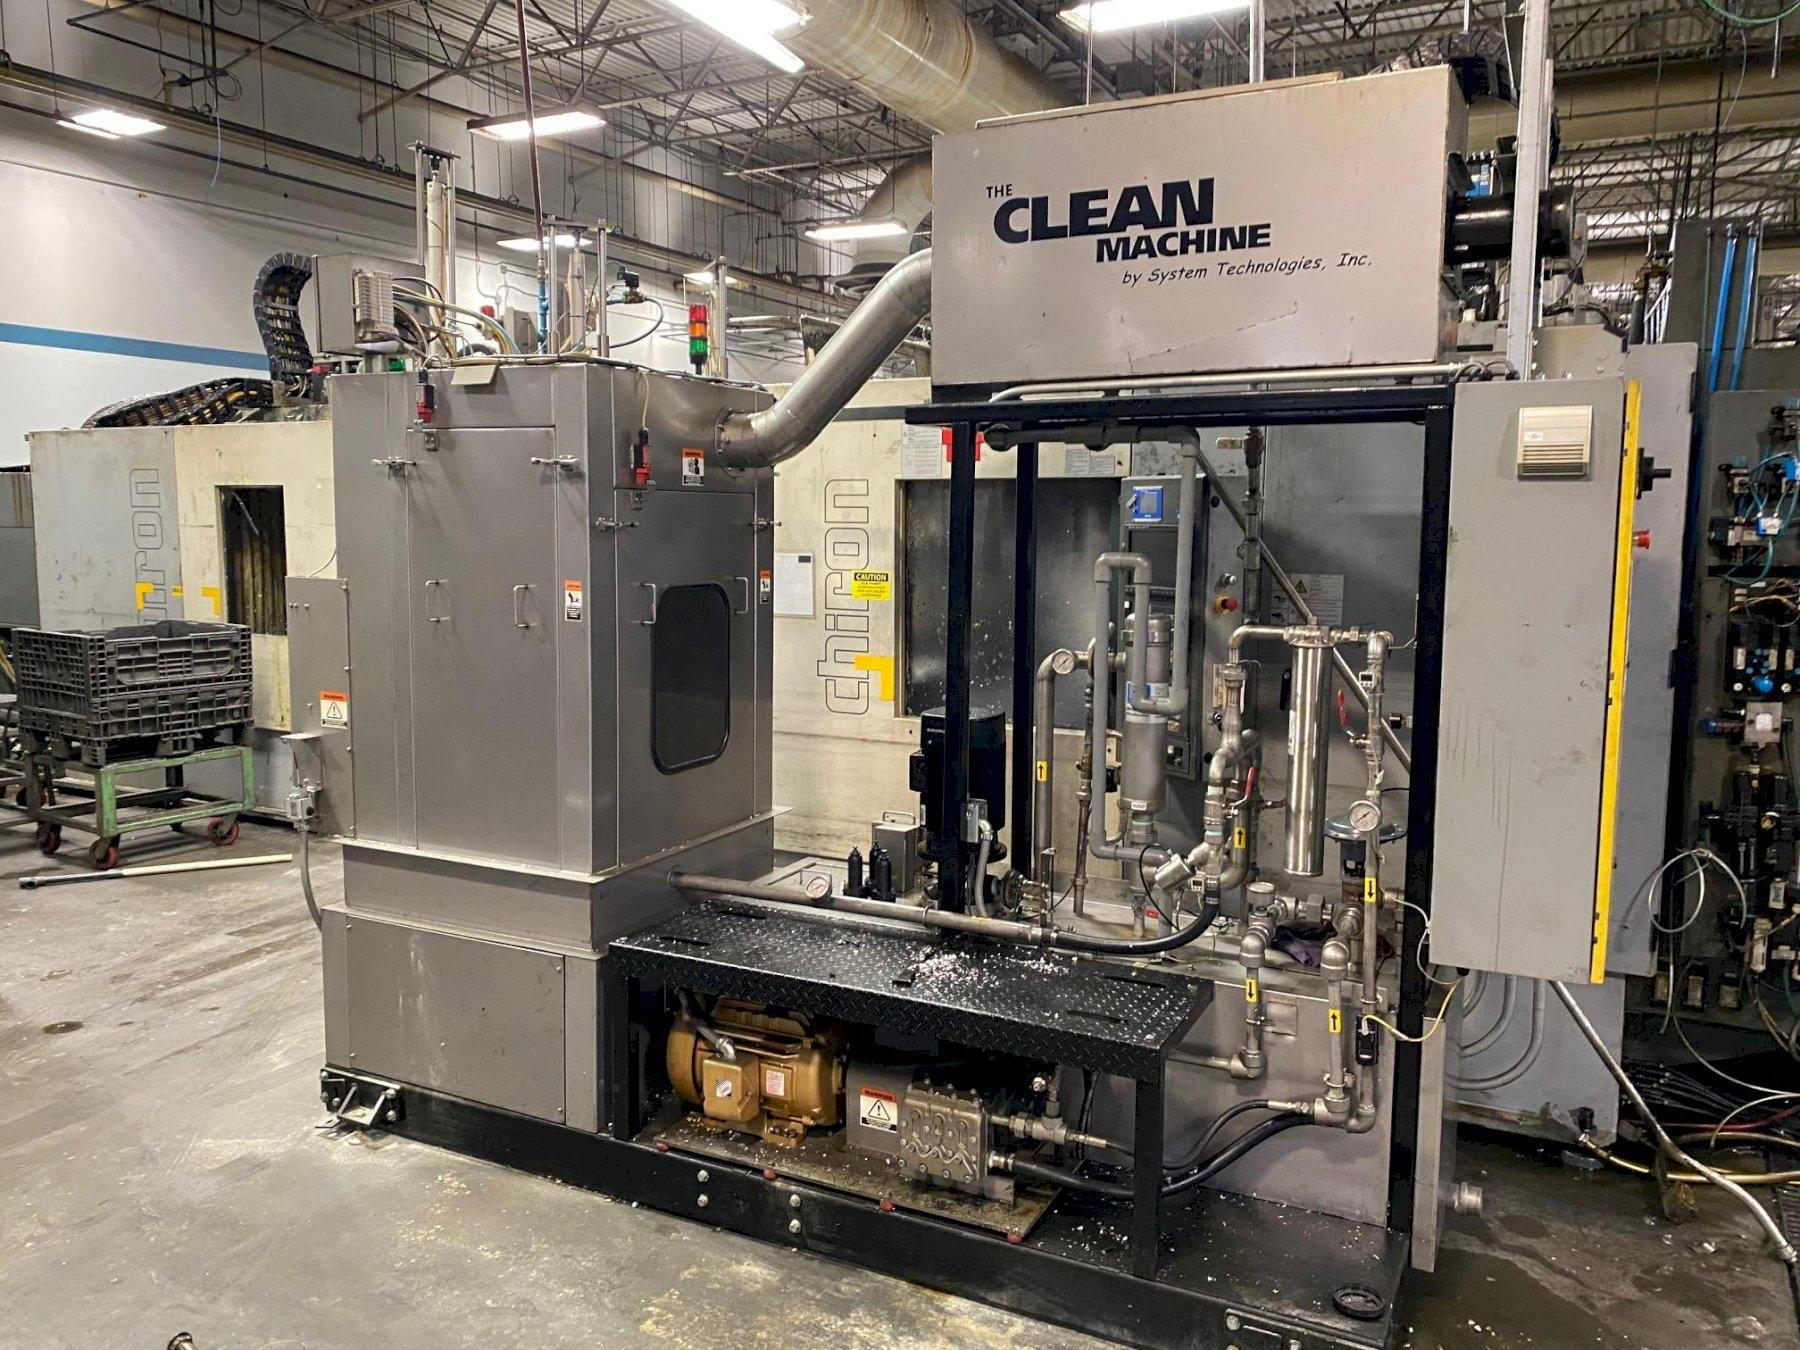 SYSTEM TECHNOLOGIES MODEL #CMI-123-480 CLEAN MACHINE HIGH PRESSURE STAINLESS STEEL PARTS WASHER: STOCK #14486